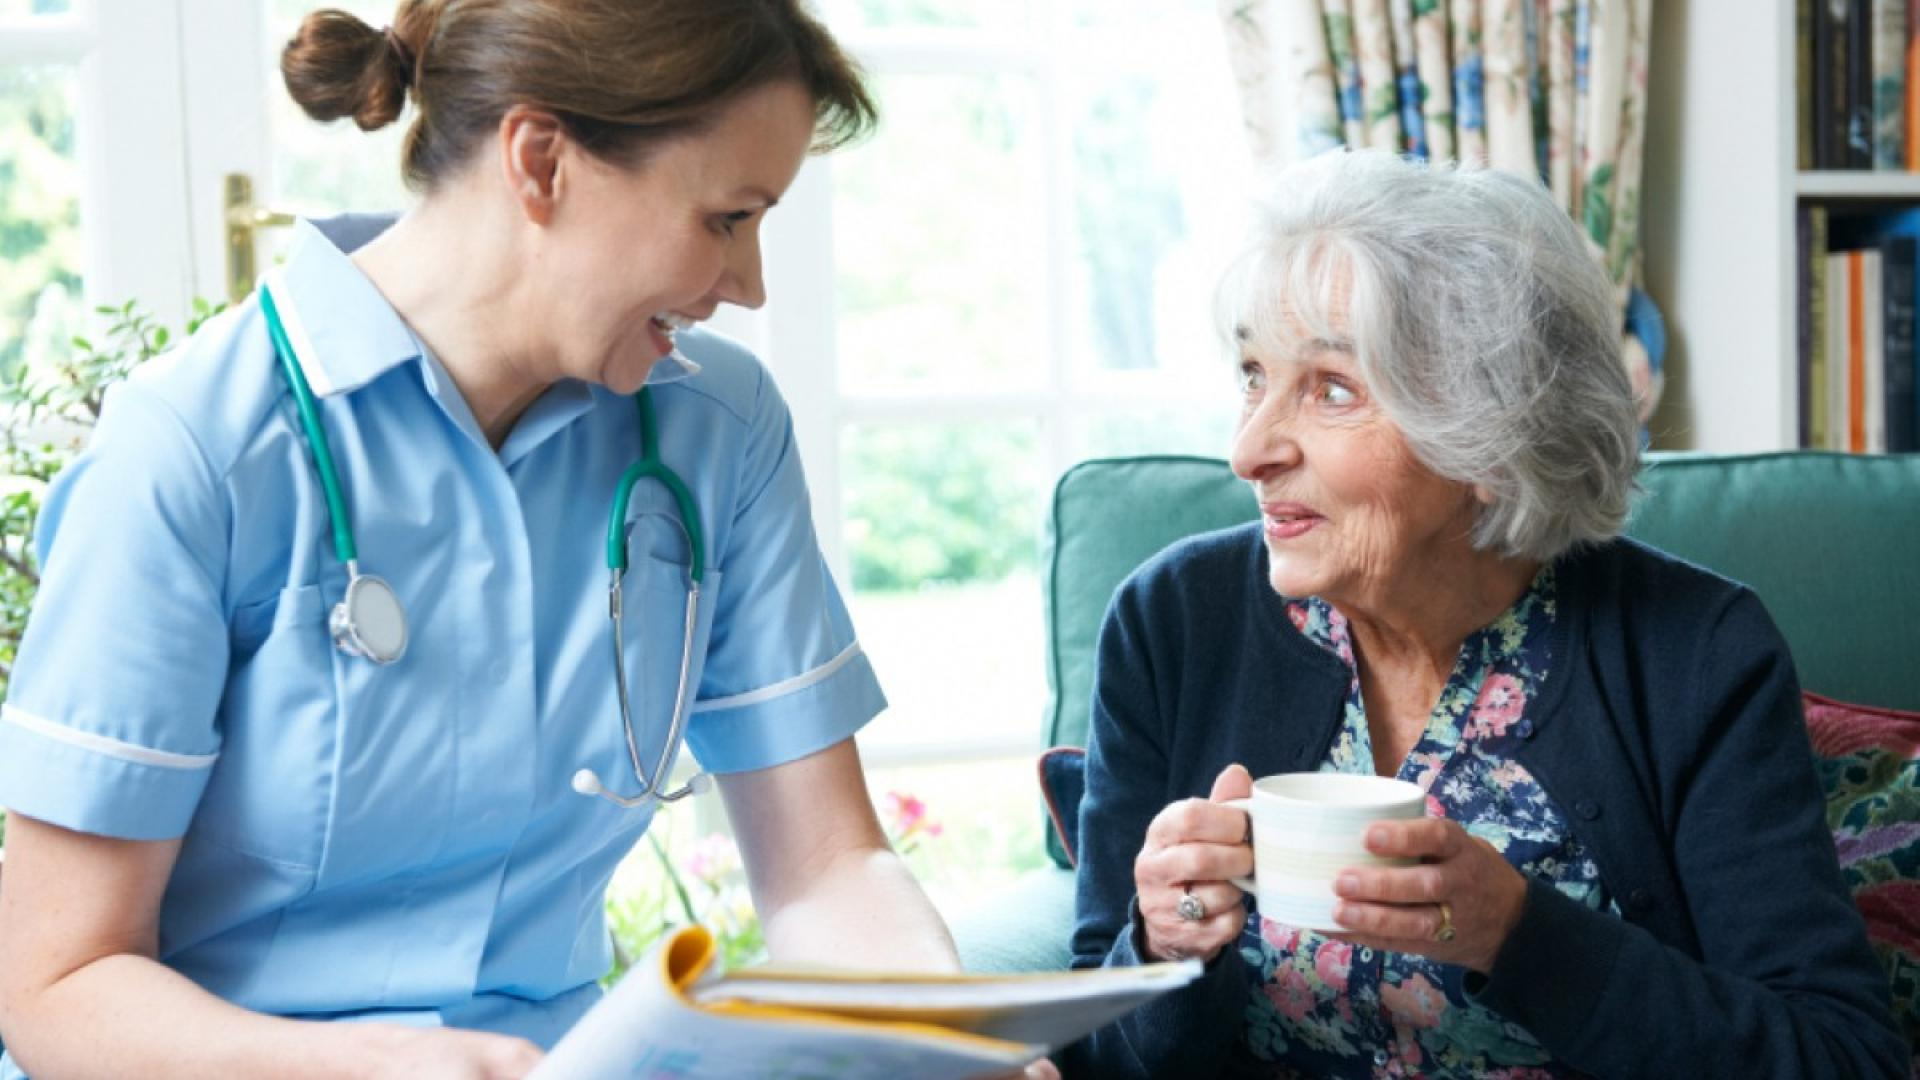 Doctors: Budget needs to increase social care funding